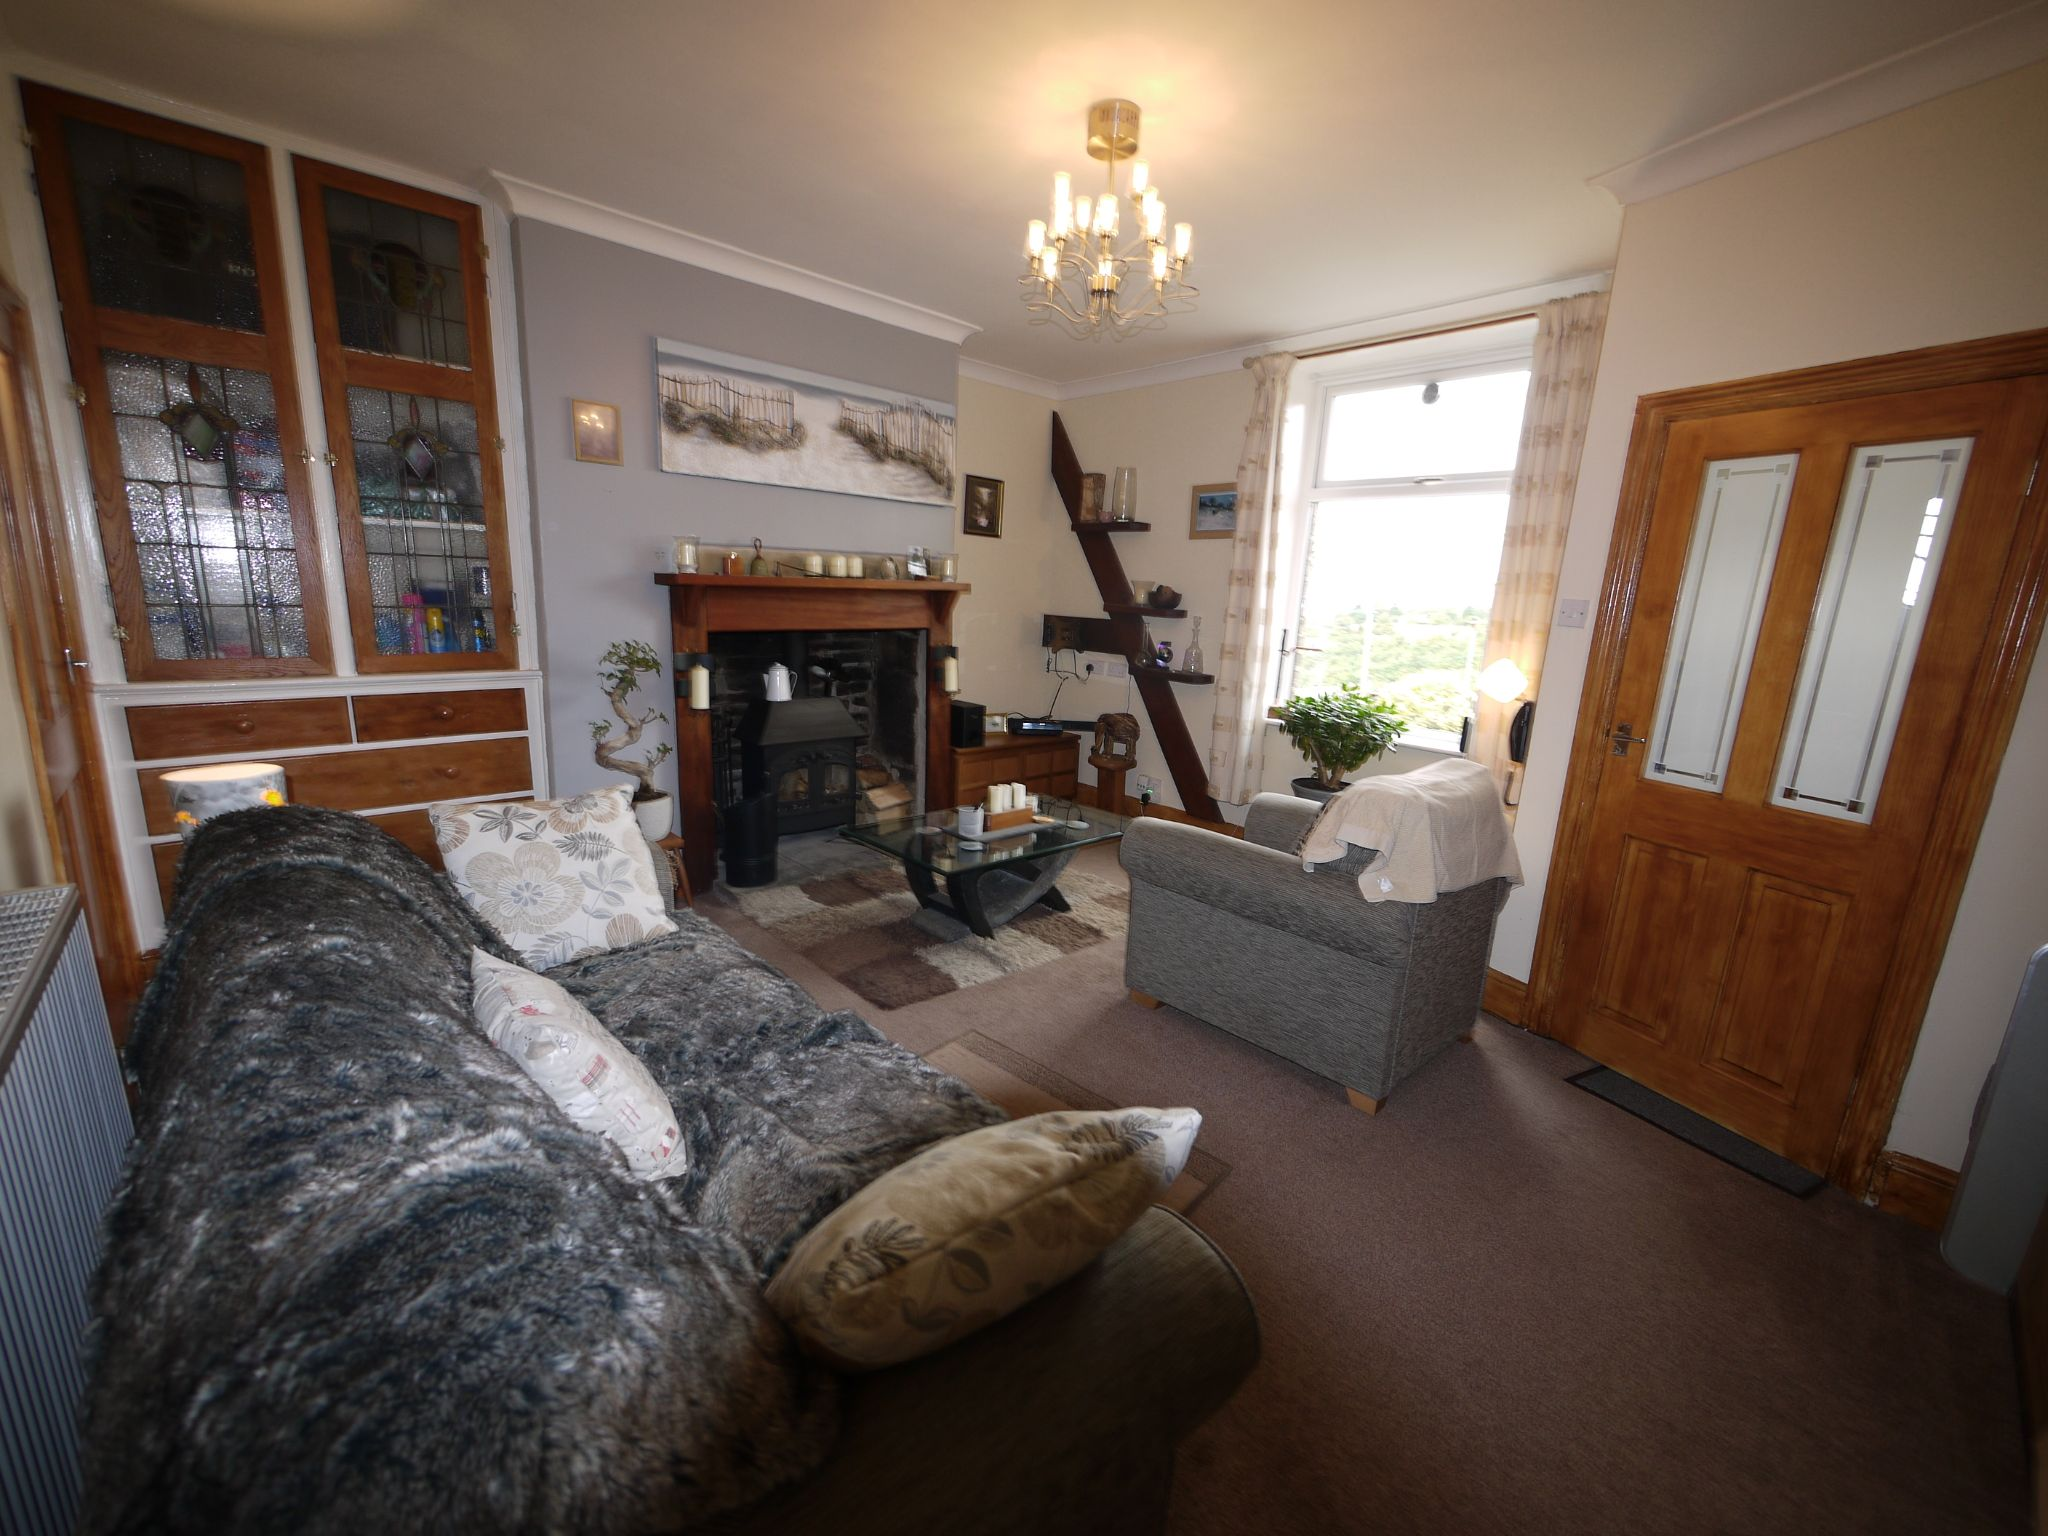 1 bedroom mid terraced house For Sale in Elland - Lounge.